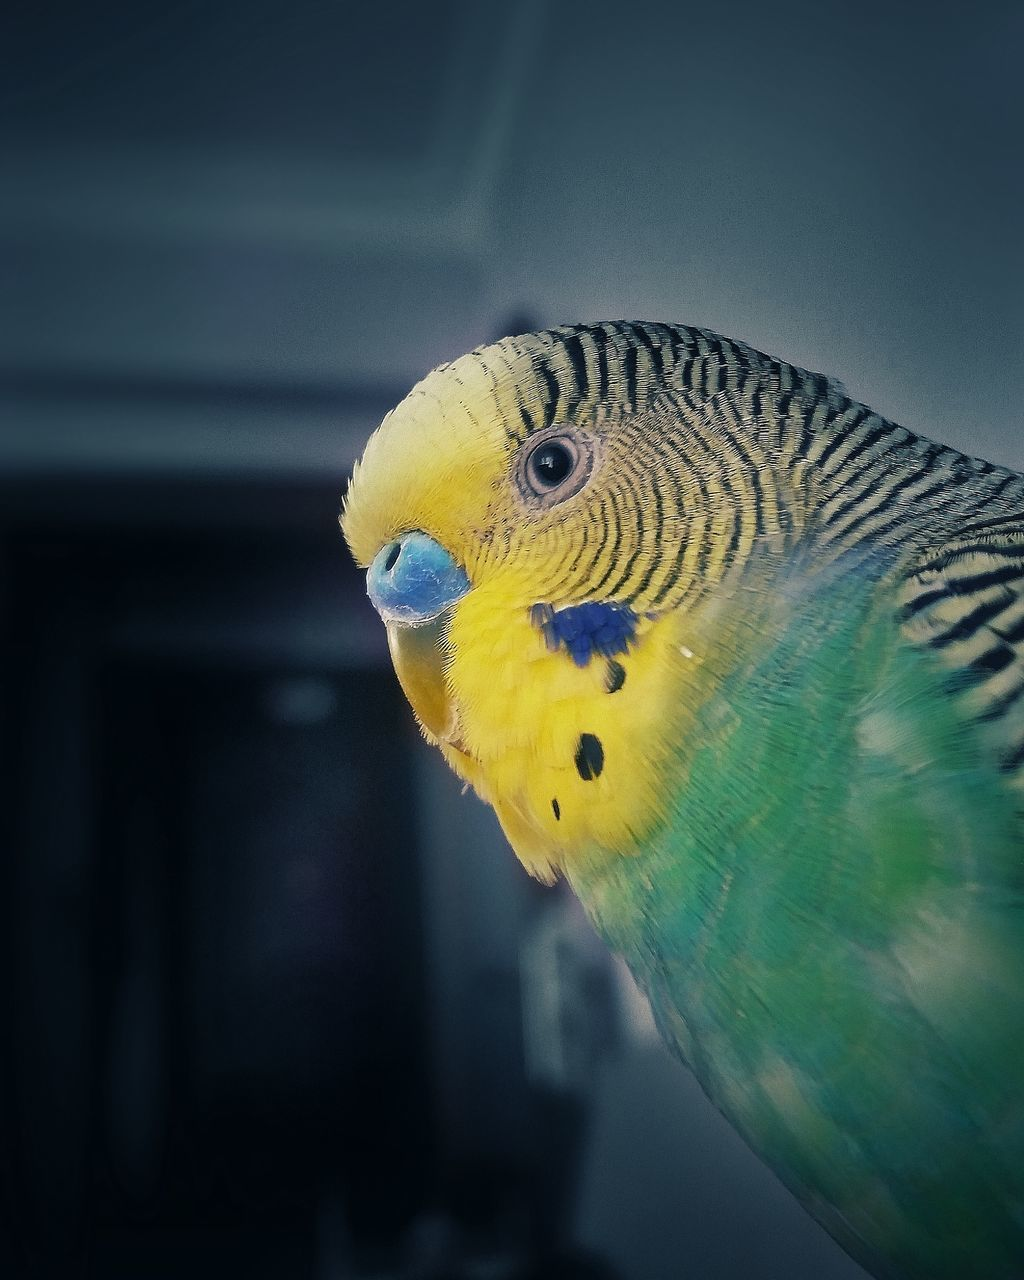 bird, parrot, one animal, animal themes, animals in the wild, yellow, animal wildlife, close-up, budgerigar, no people, blue, beak, nature, day, indoors, beauty in nature, perching, gold and blue macaw, macaw